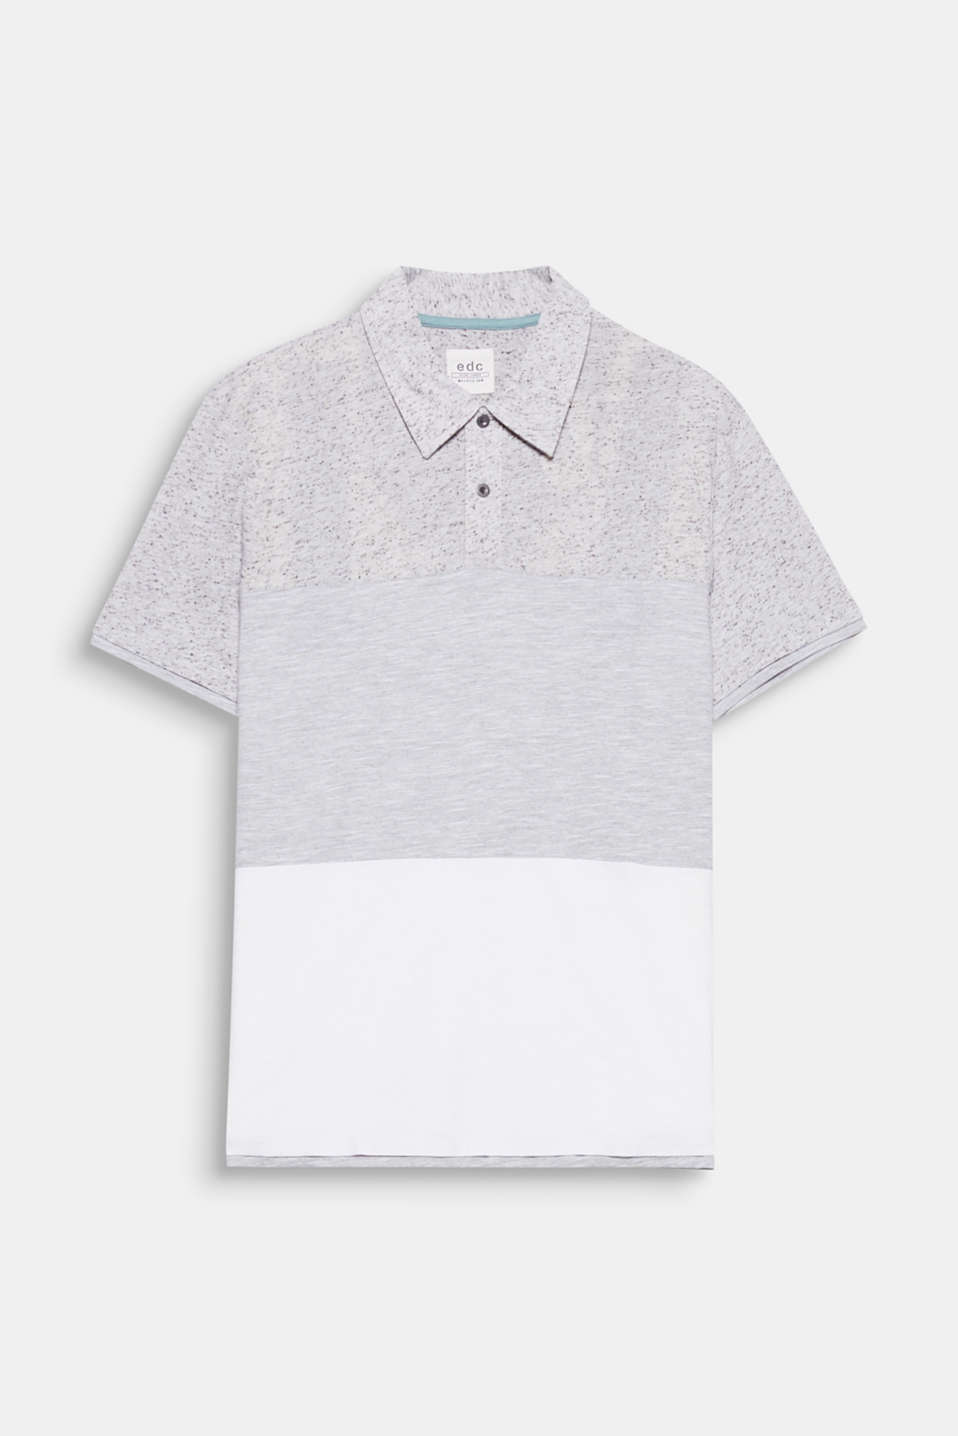 We love texture! Melange or textured slub jersey and nubbed look – this polo shirt has a fresh, urban look.